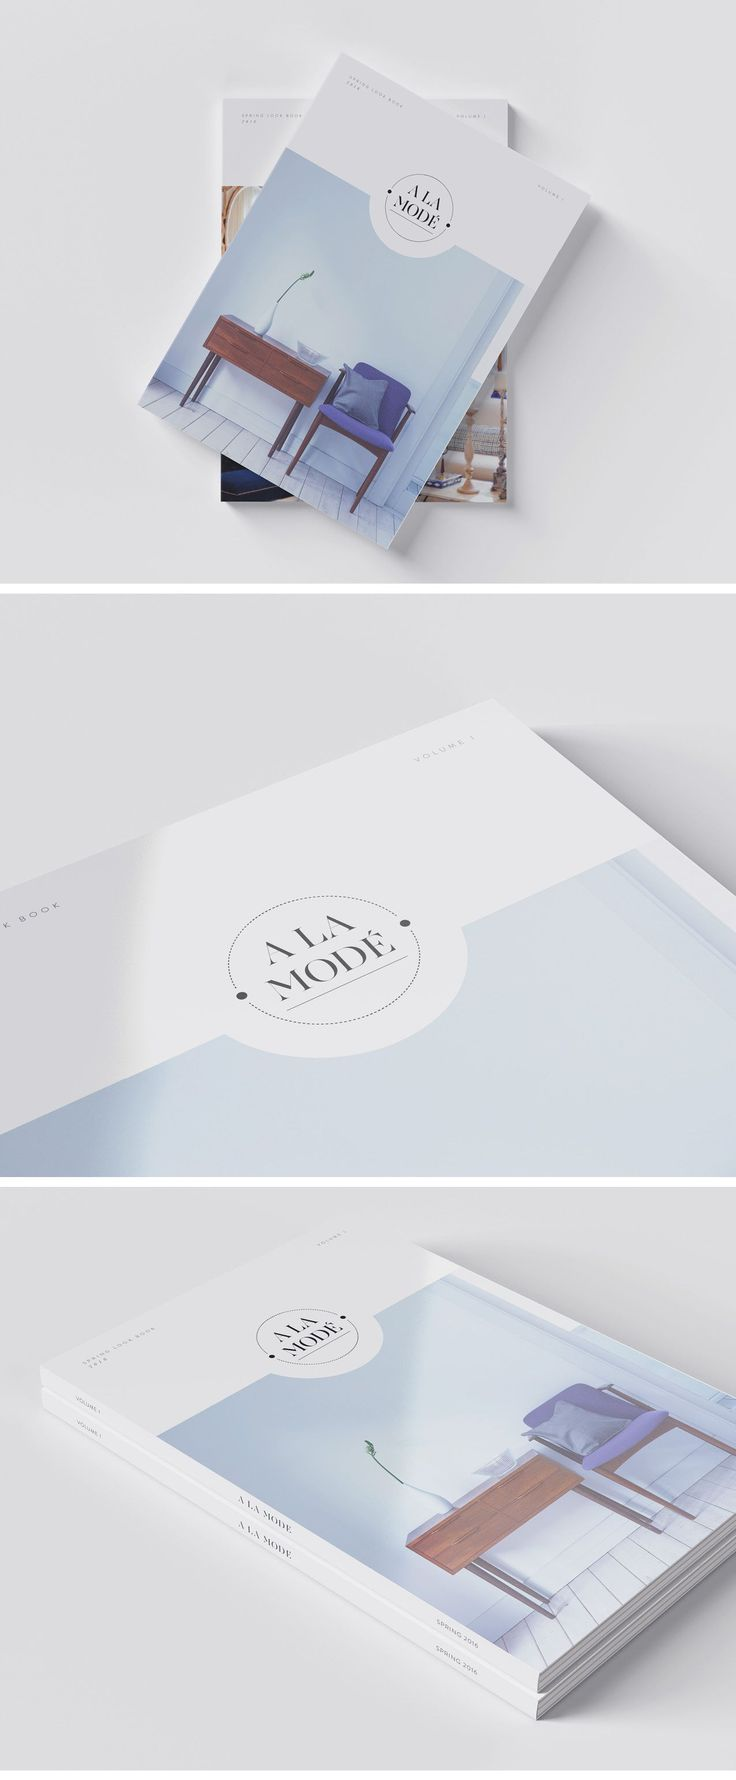 A La Mode is a contemporary home interiors company inspired by mid century modern furniture. The minimal magazine cover layout  was produced as a mock up for the client. It will form the branding guidelines package which includes typography choices, colour palette, editorial layouts and photography styling. Template available for download at: https://creativemarket.com/areto-studio/1653514-A-La-Mode-MagazineBrochure-Template